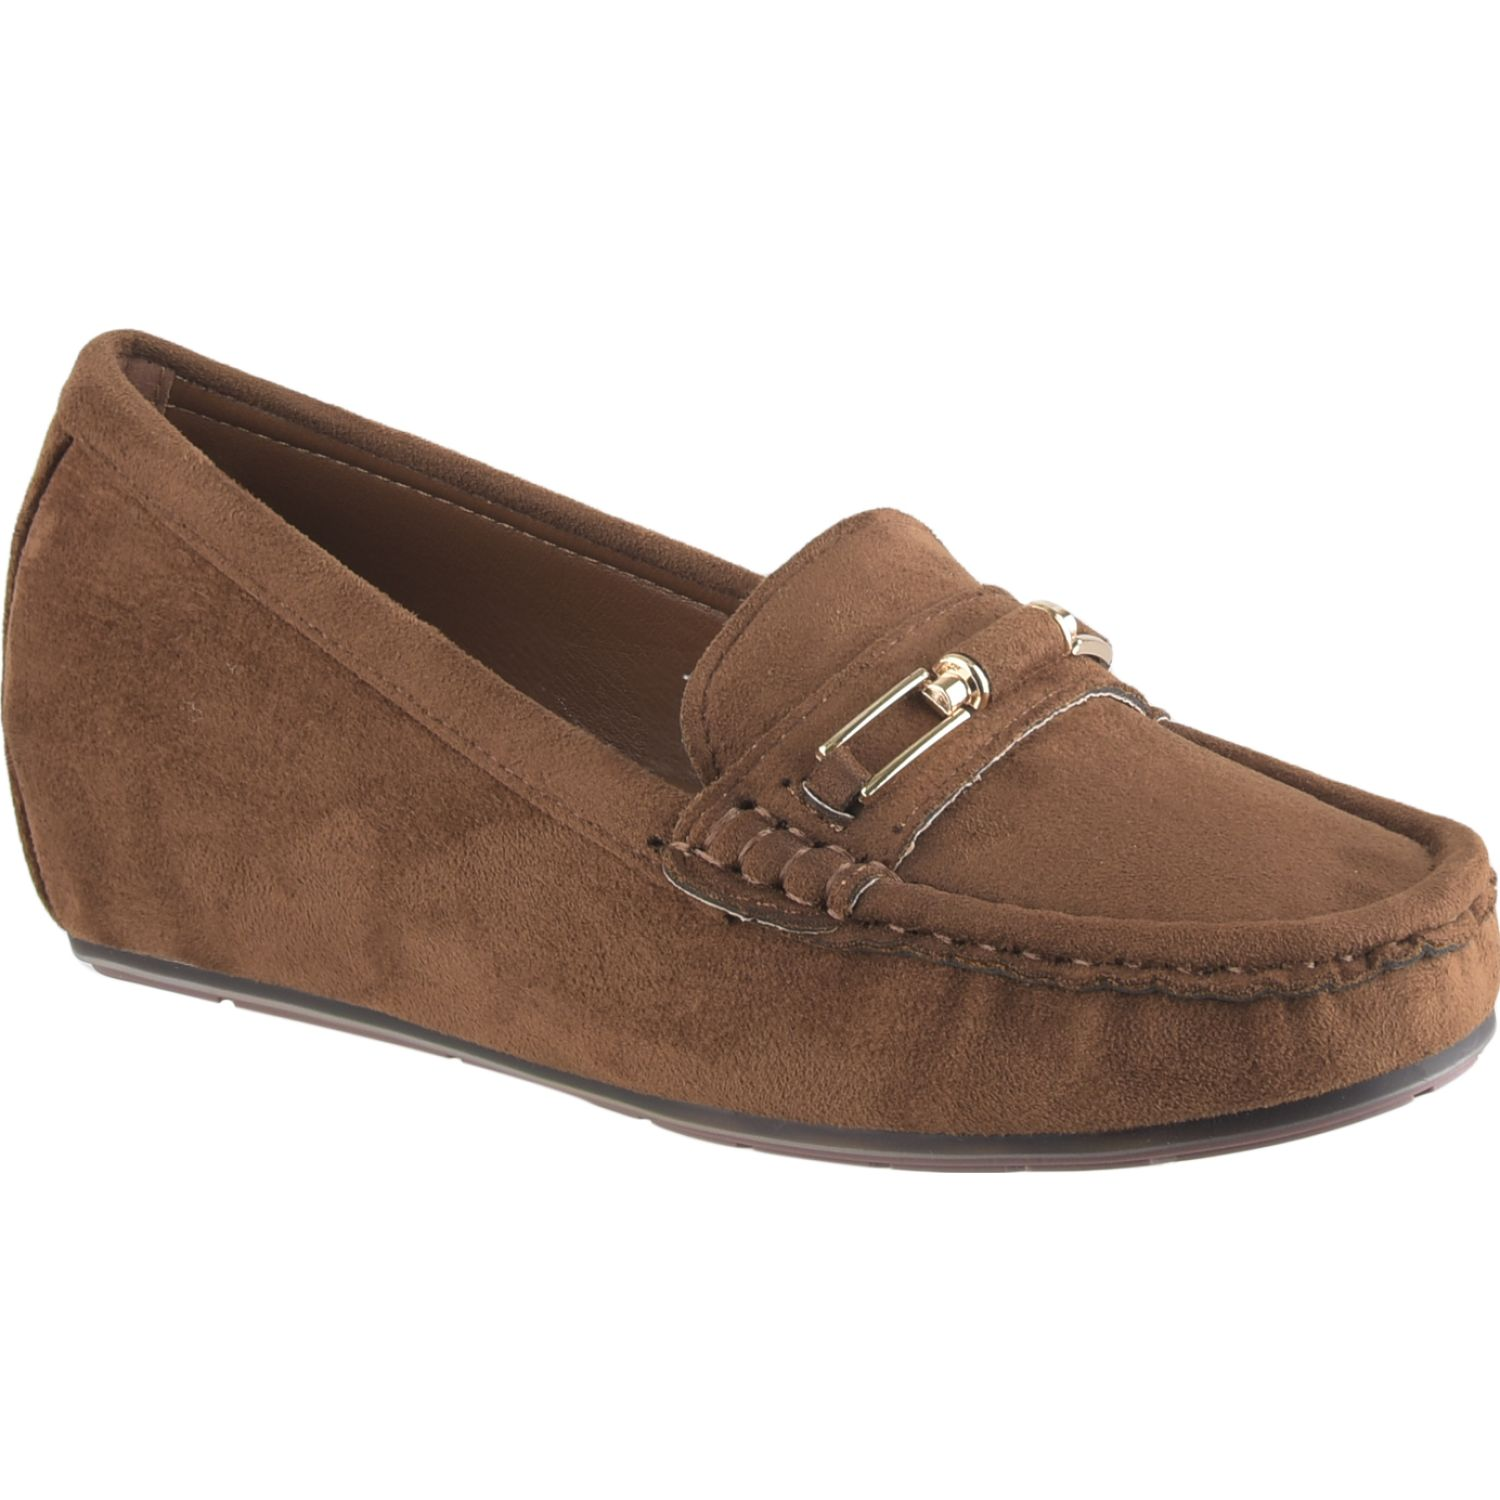 Platanitos MW 126 Marron Mocasines y Slip-Ons